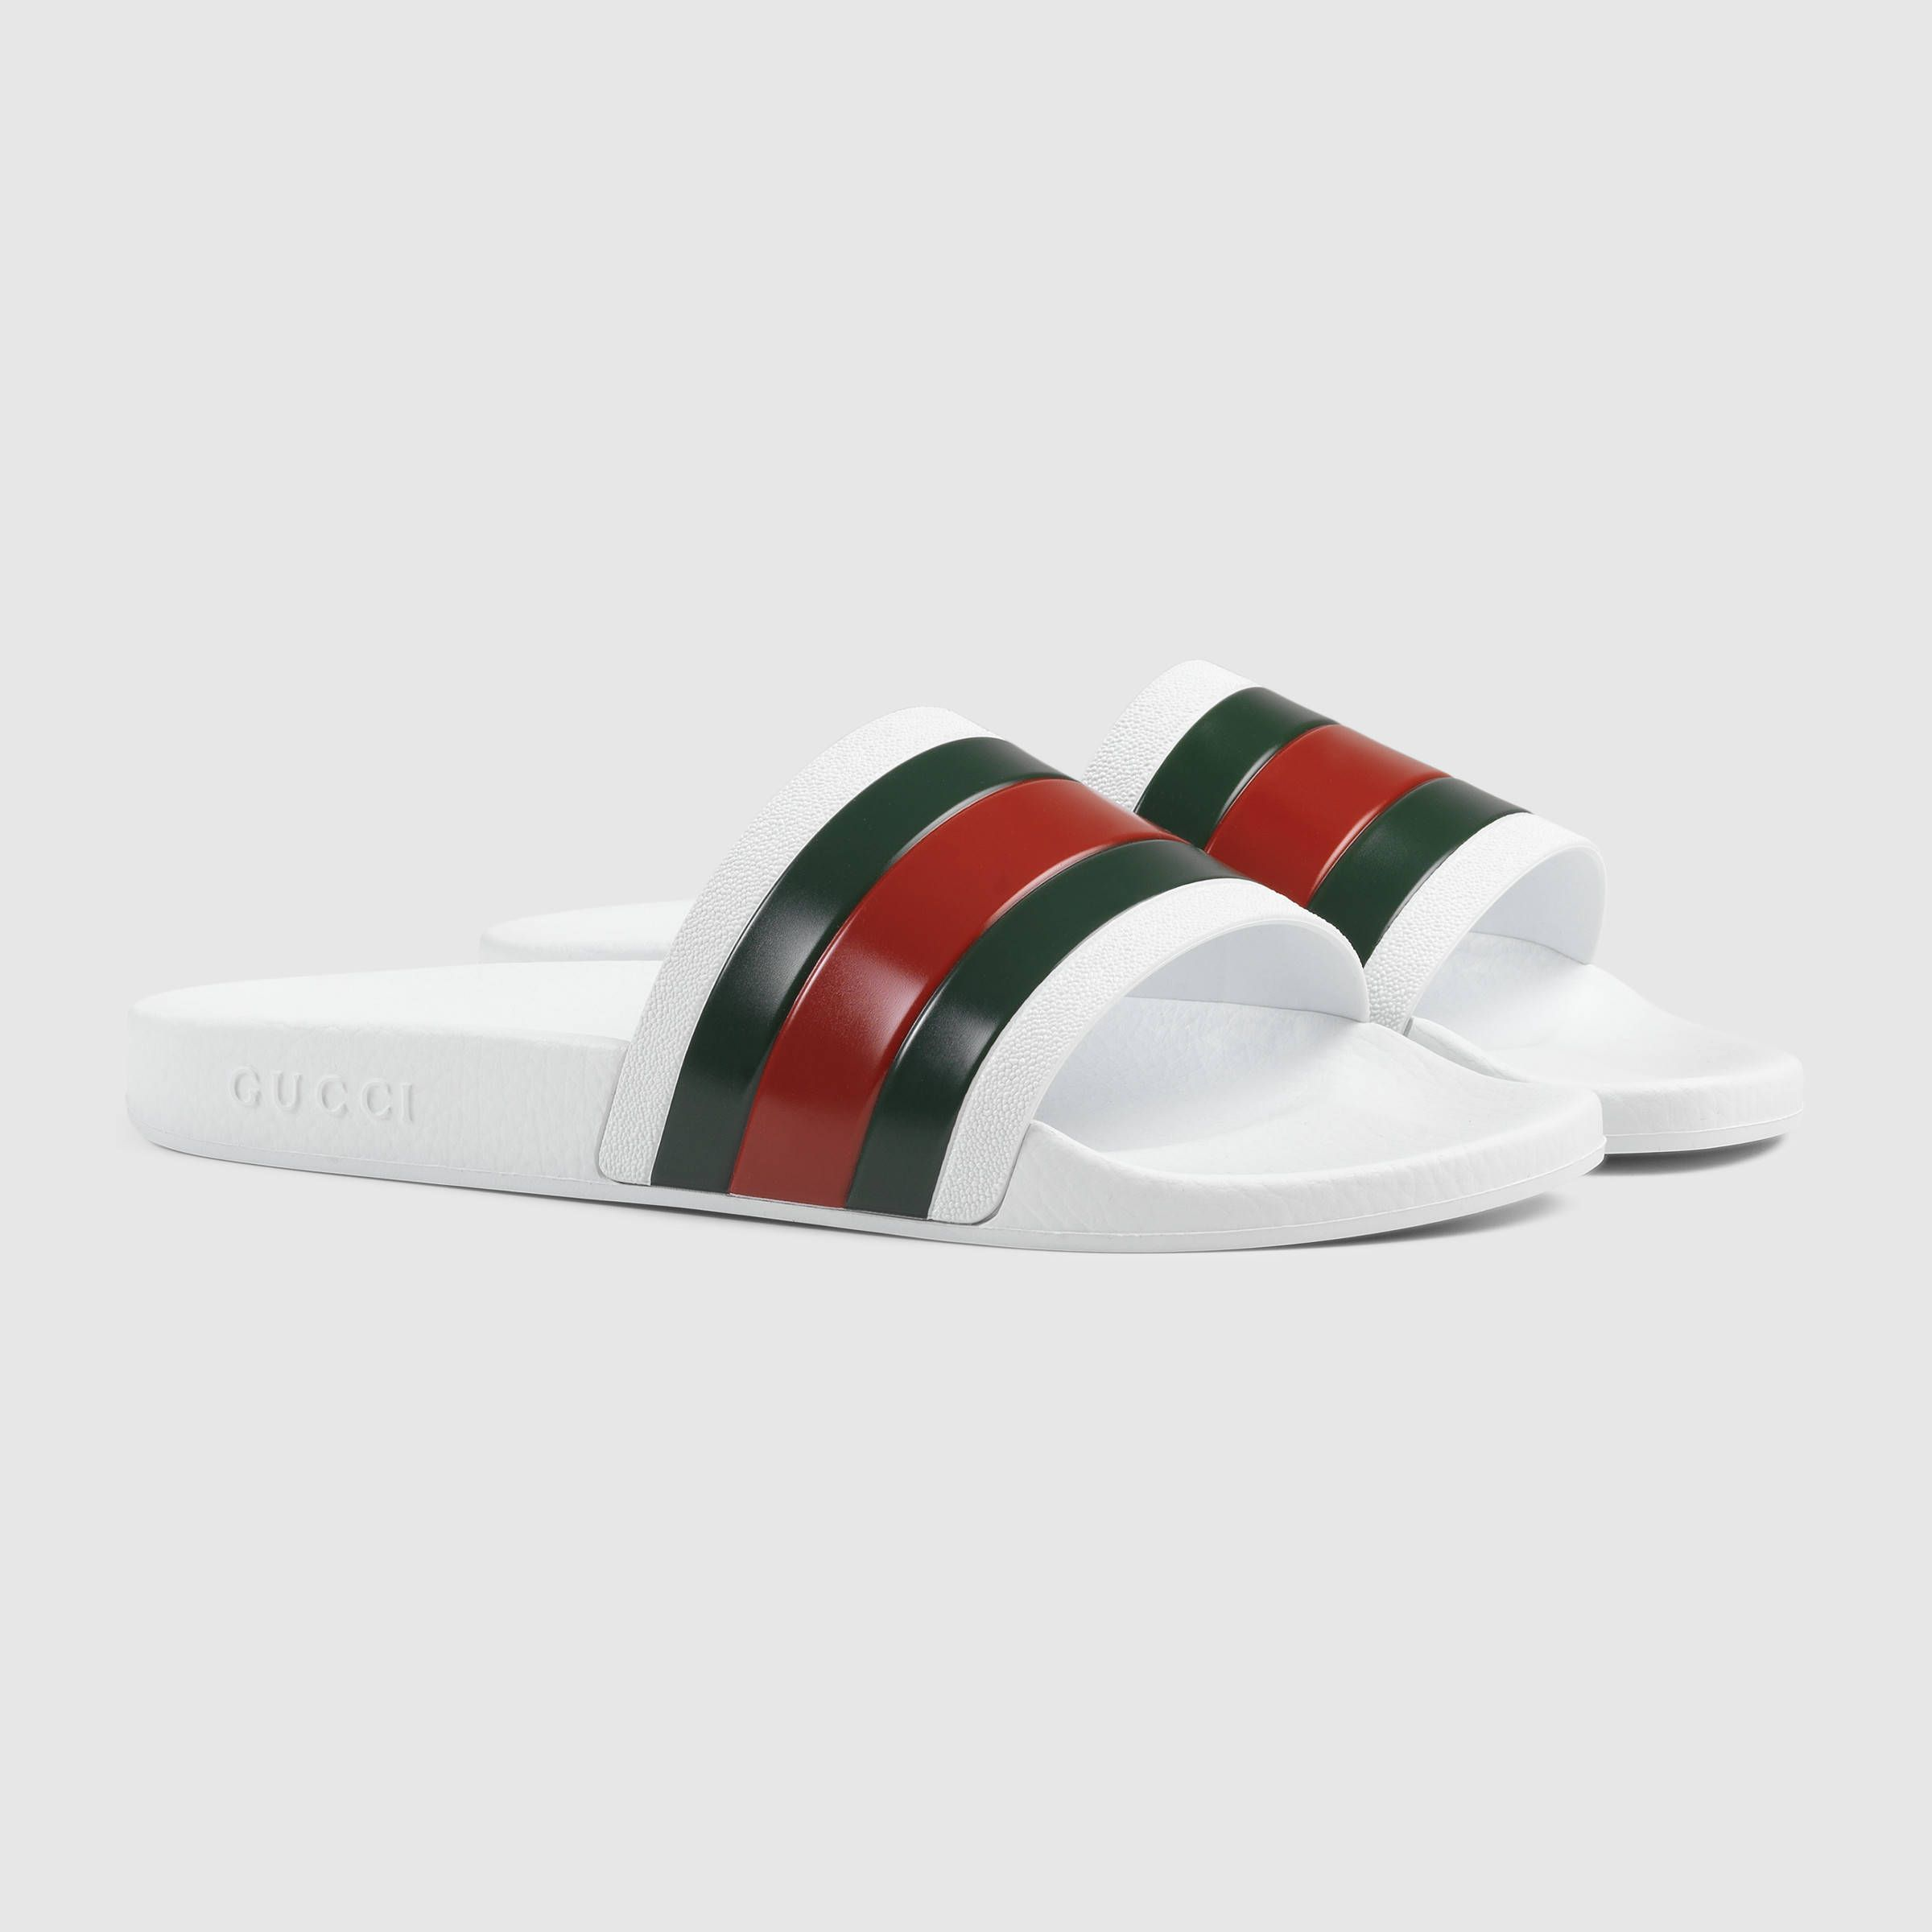 801c8f001da Gucci Men - Rubber slide sandal -  160